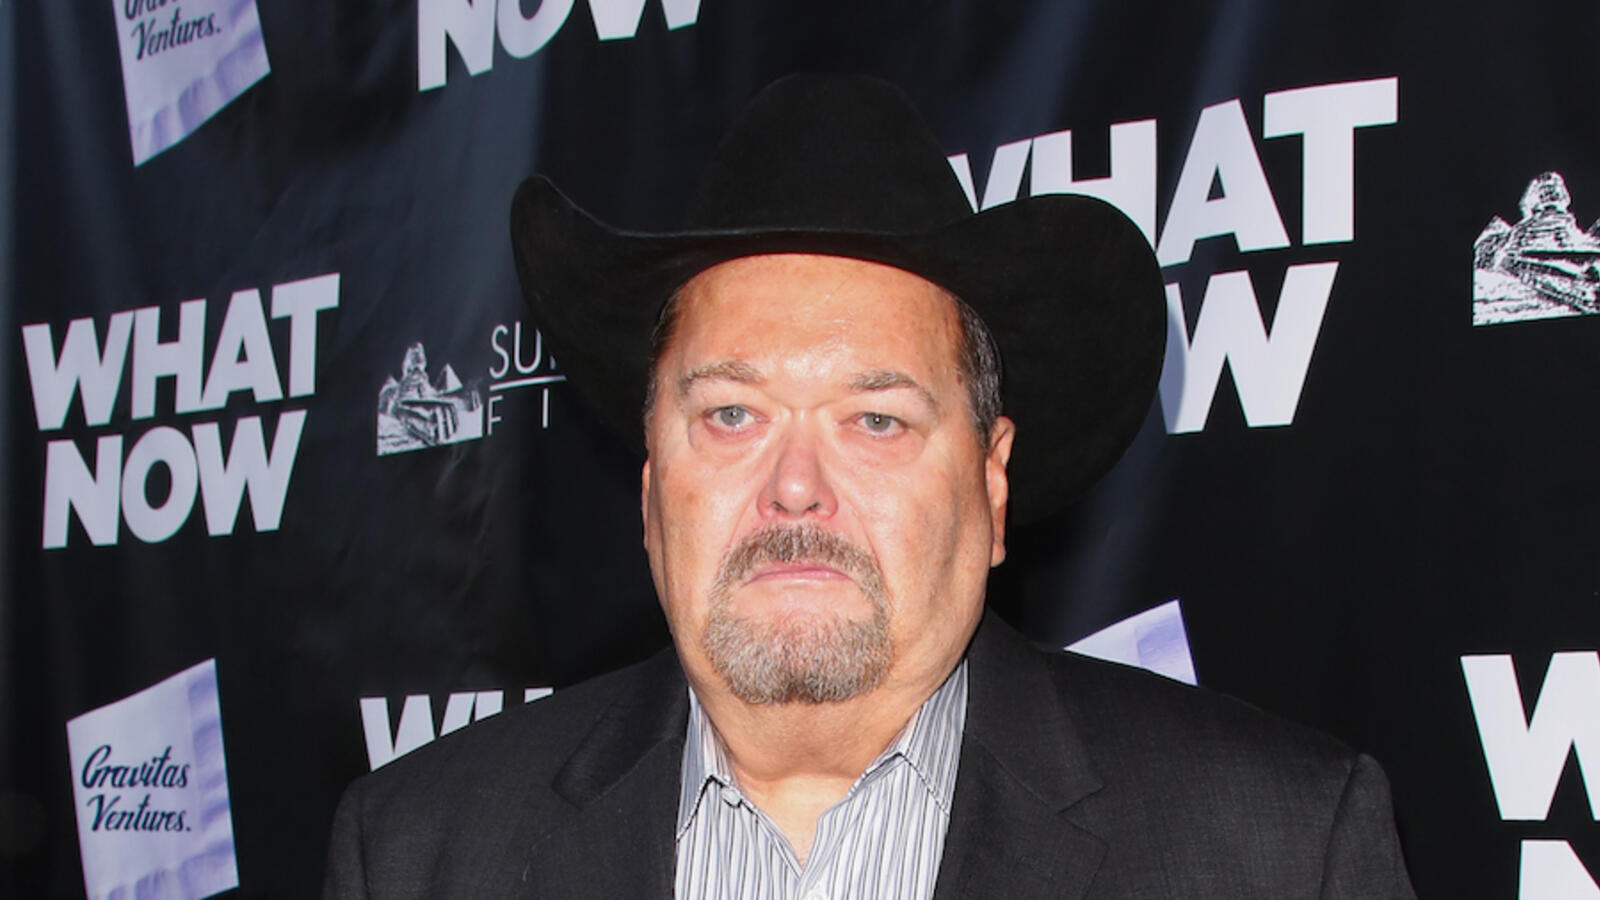 Hall Of Fame Wrestling Announcer Jim Ross Announces Skin Cancer Diagnosis